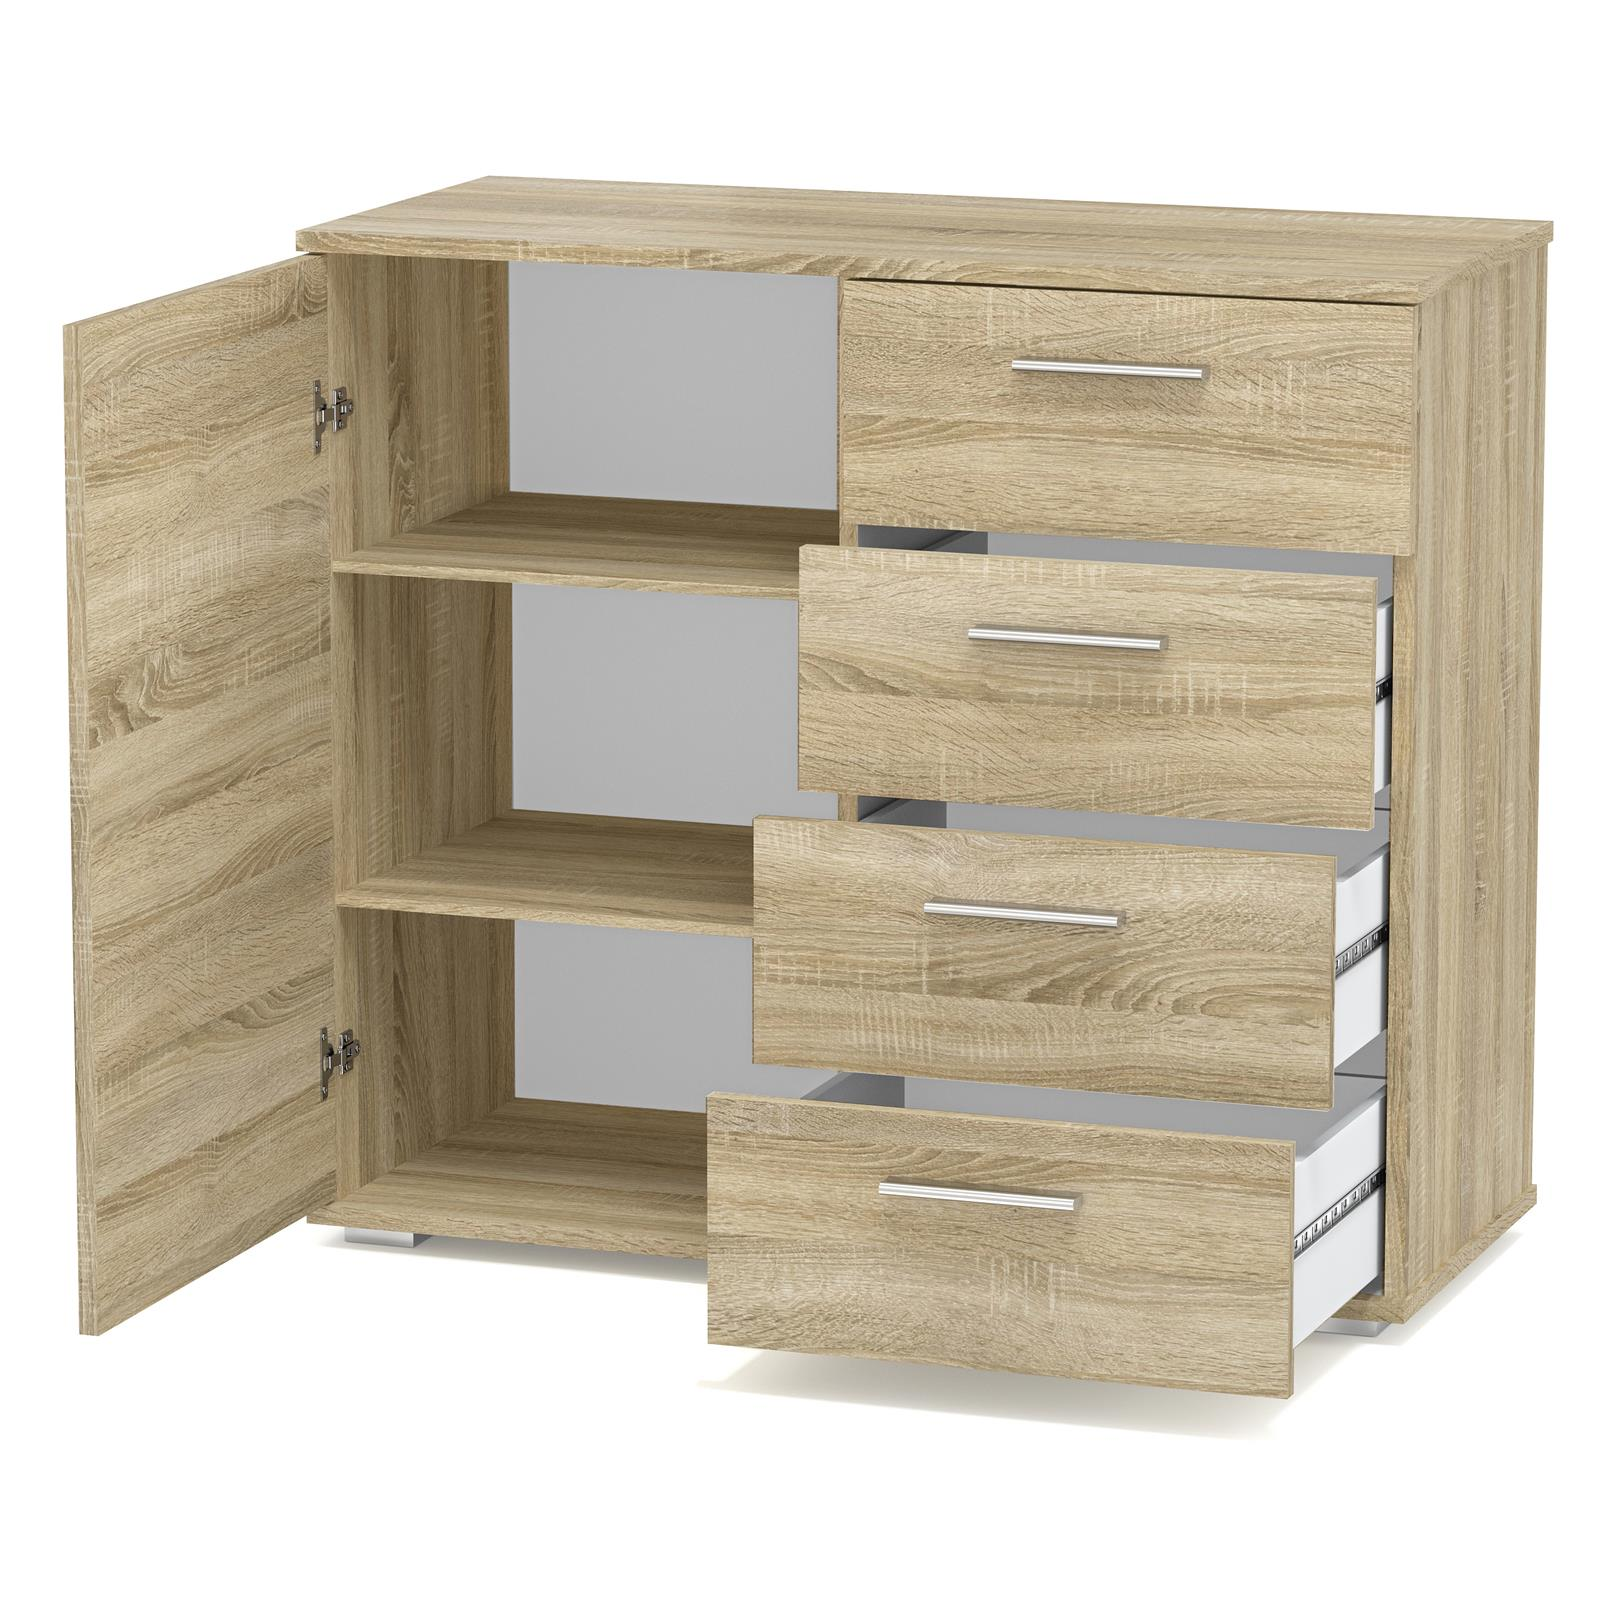 kommode sideboard schrank in verschiedenen farben. Black Bedroom Furniture Sets. Home Design Ideas